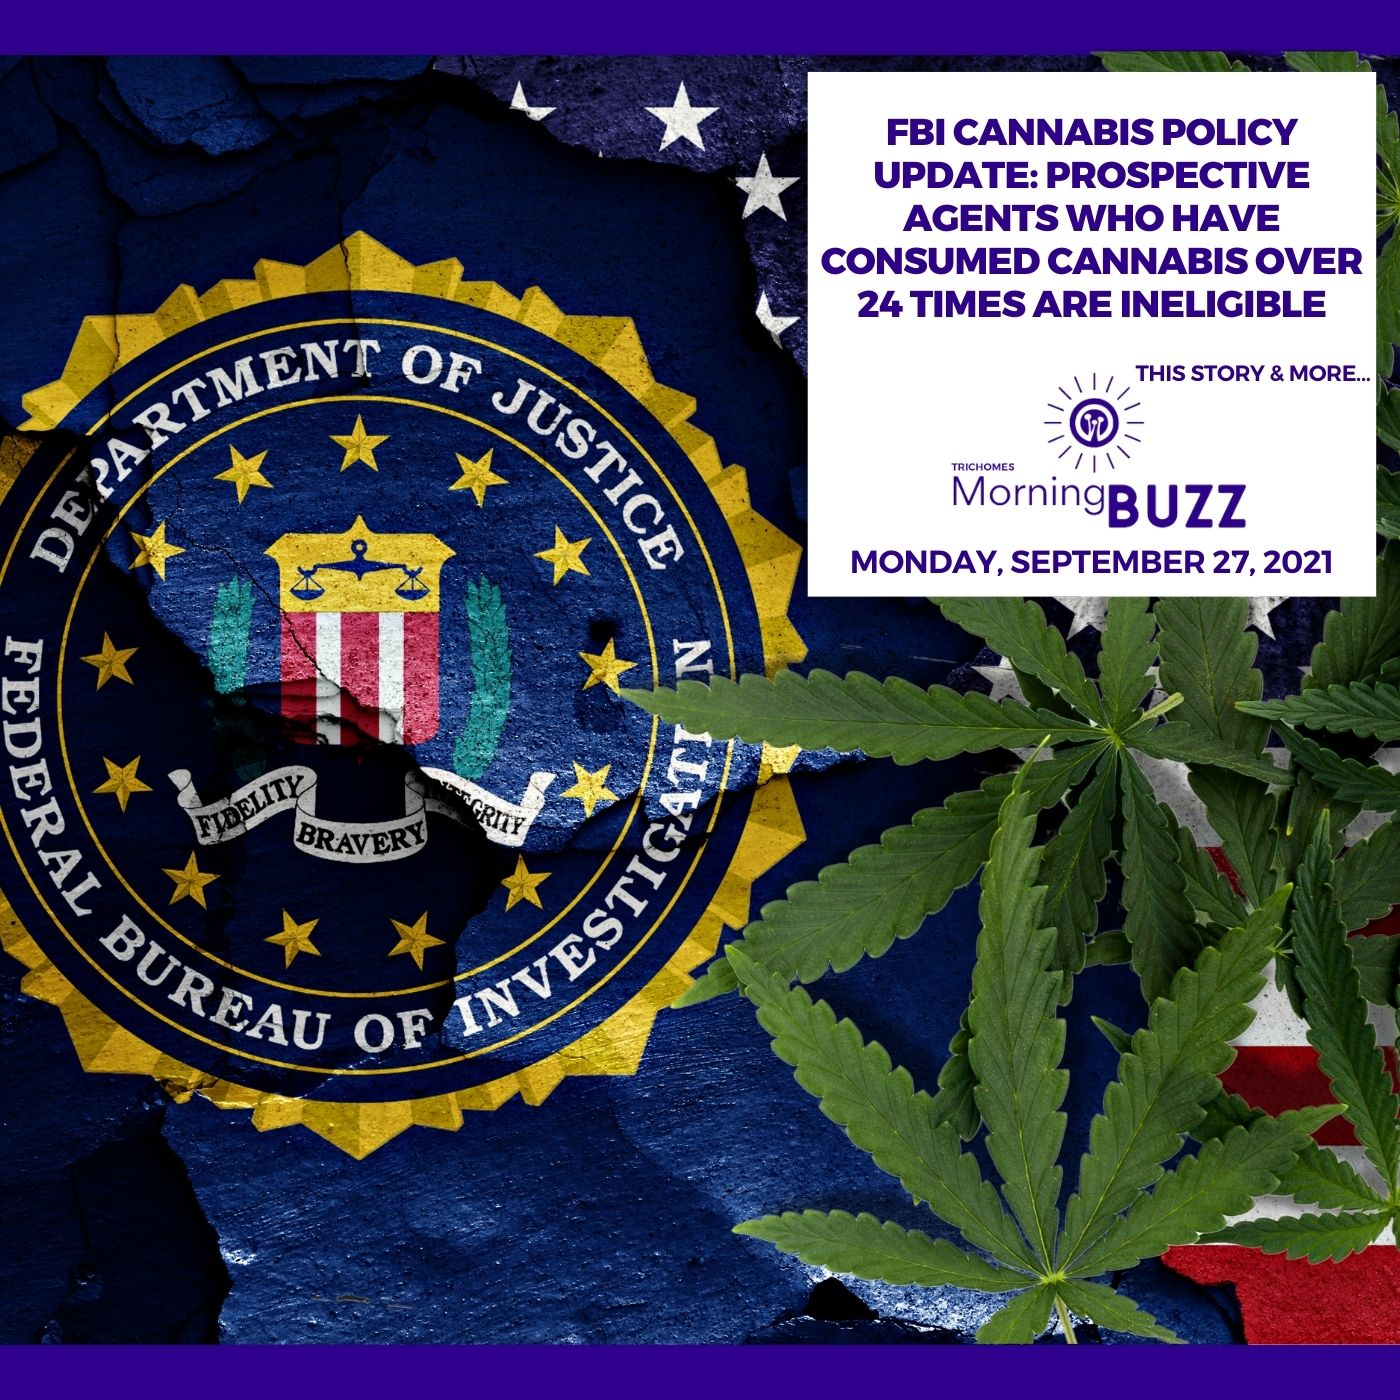 FBI Cannabis Policy Update: Prospective Agents Who Have Consumed Cannabis Over 24 Times Are Ineligible show art